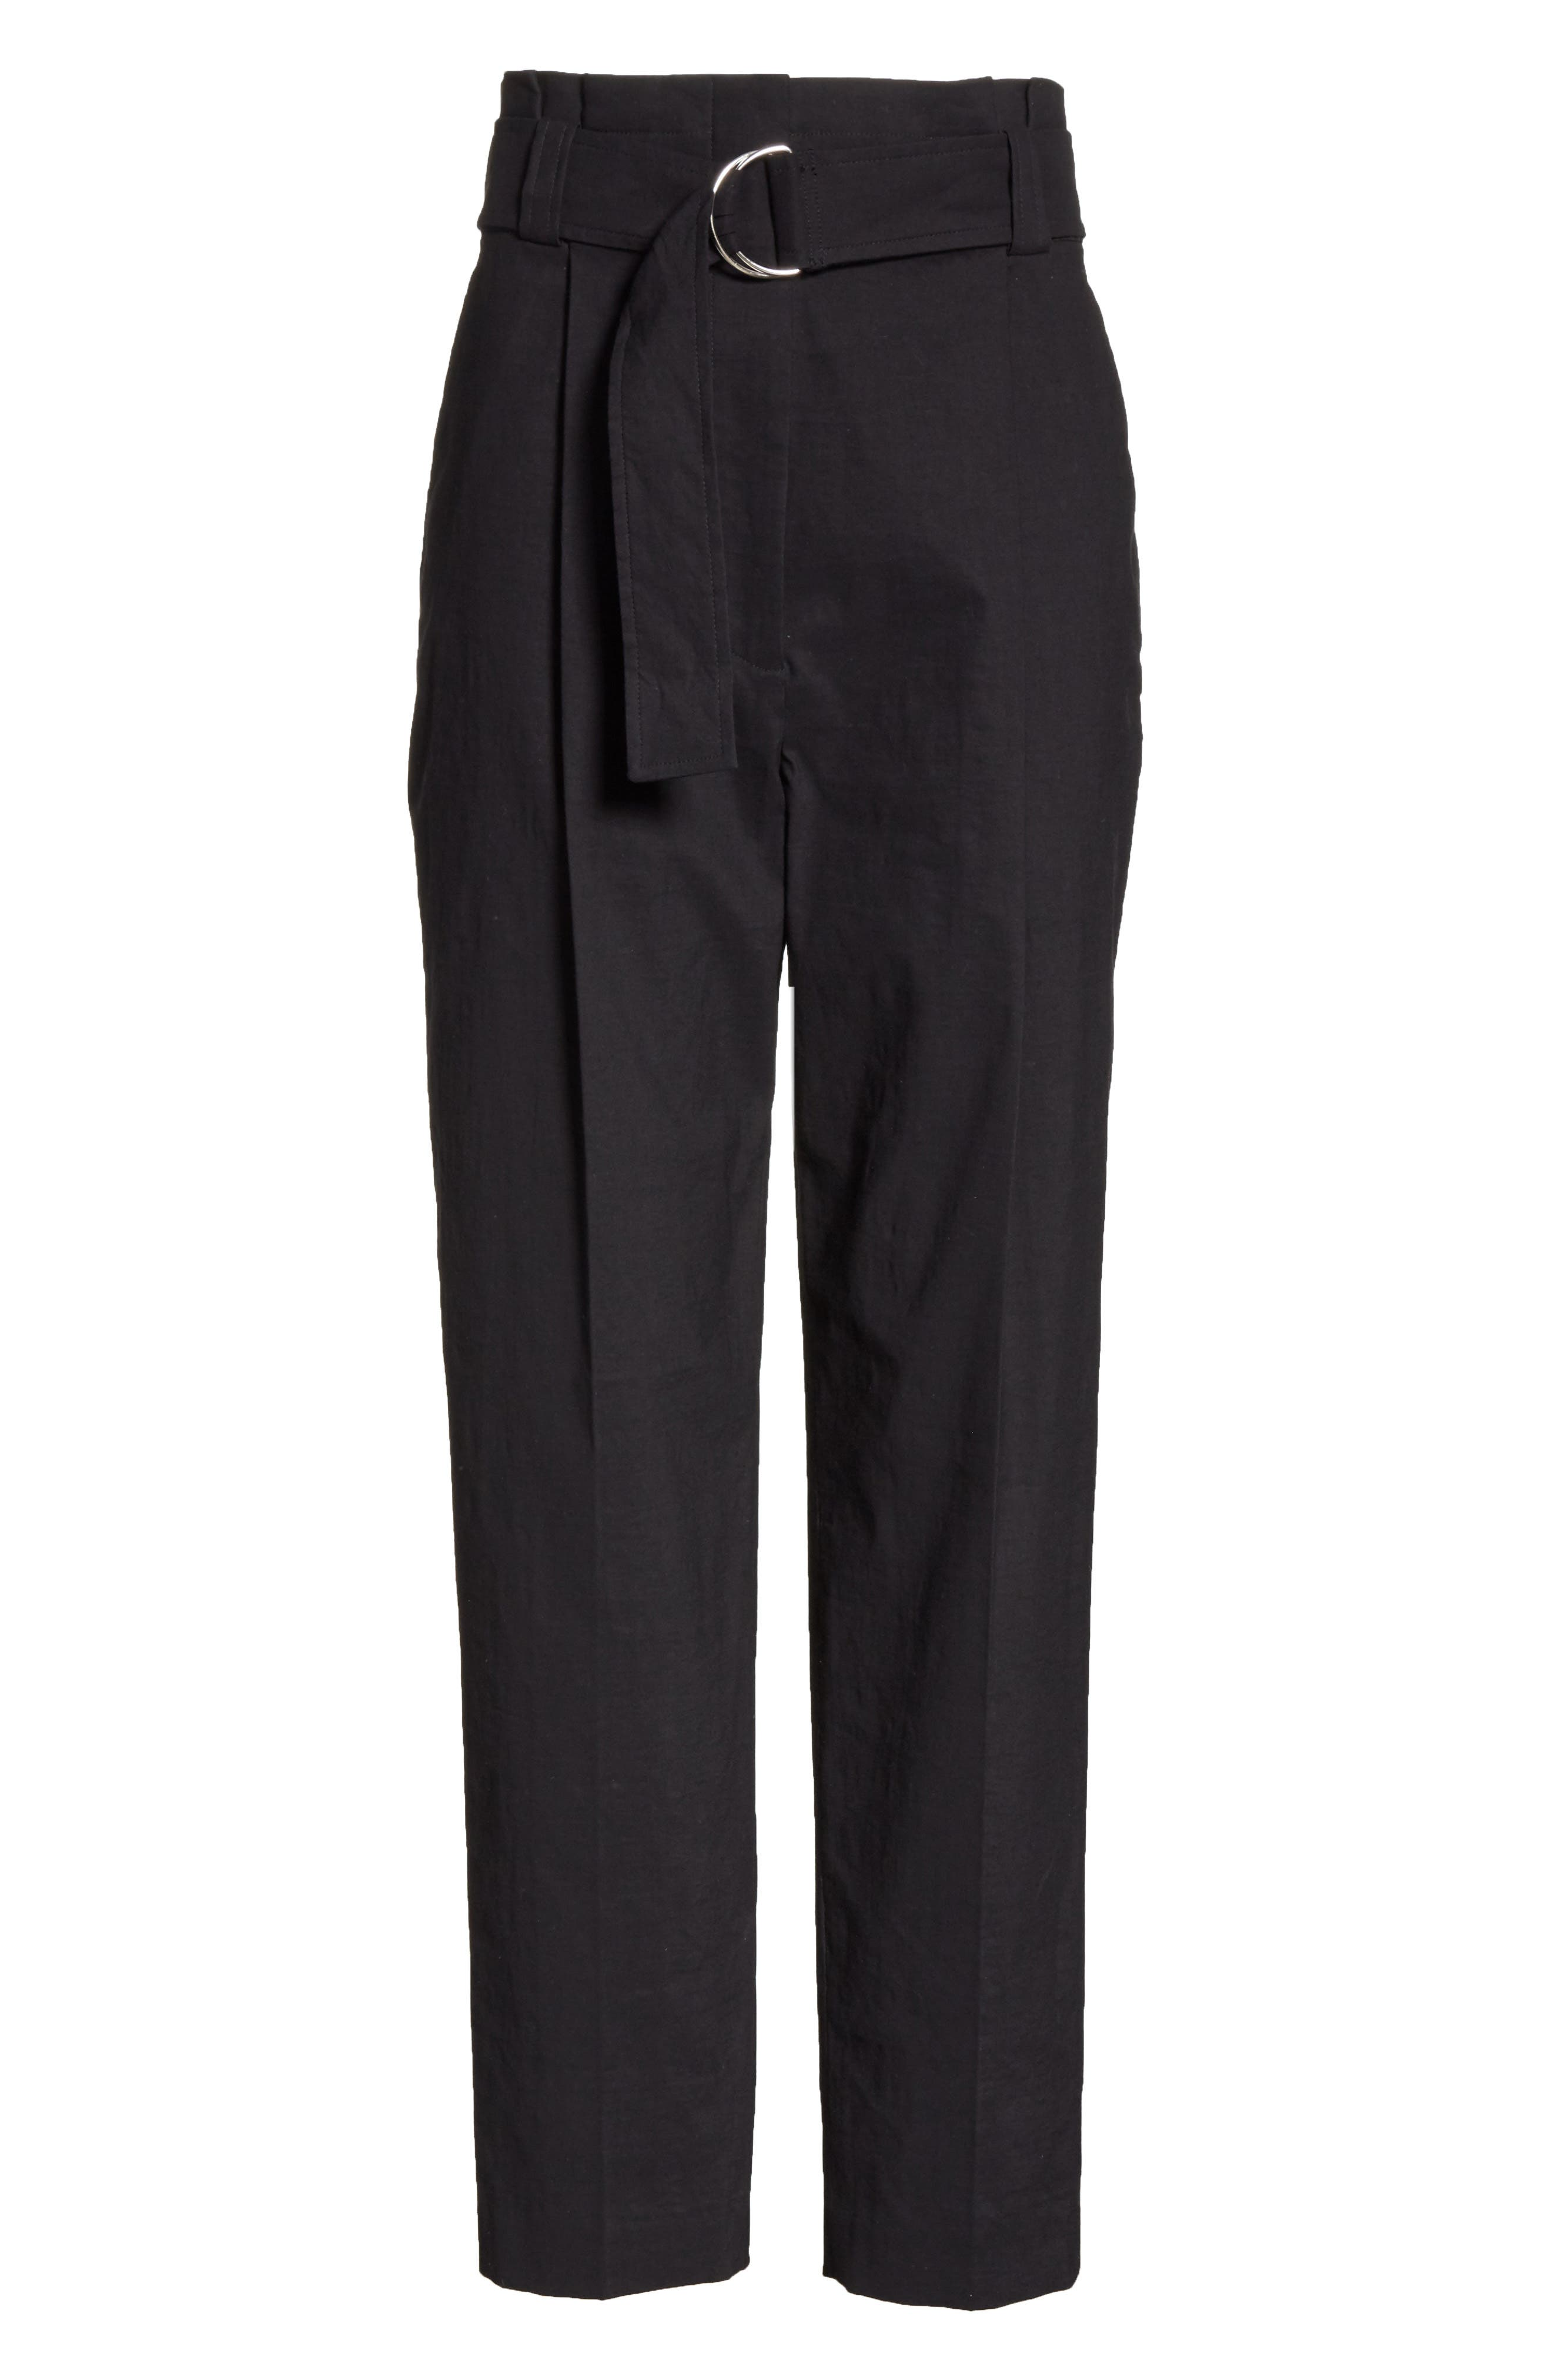 Diego High Waist Pants,                             Alternate thumbnail 6, color,                             Black